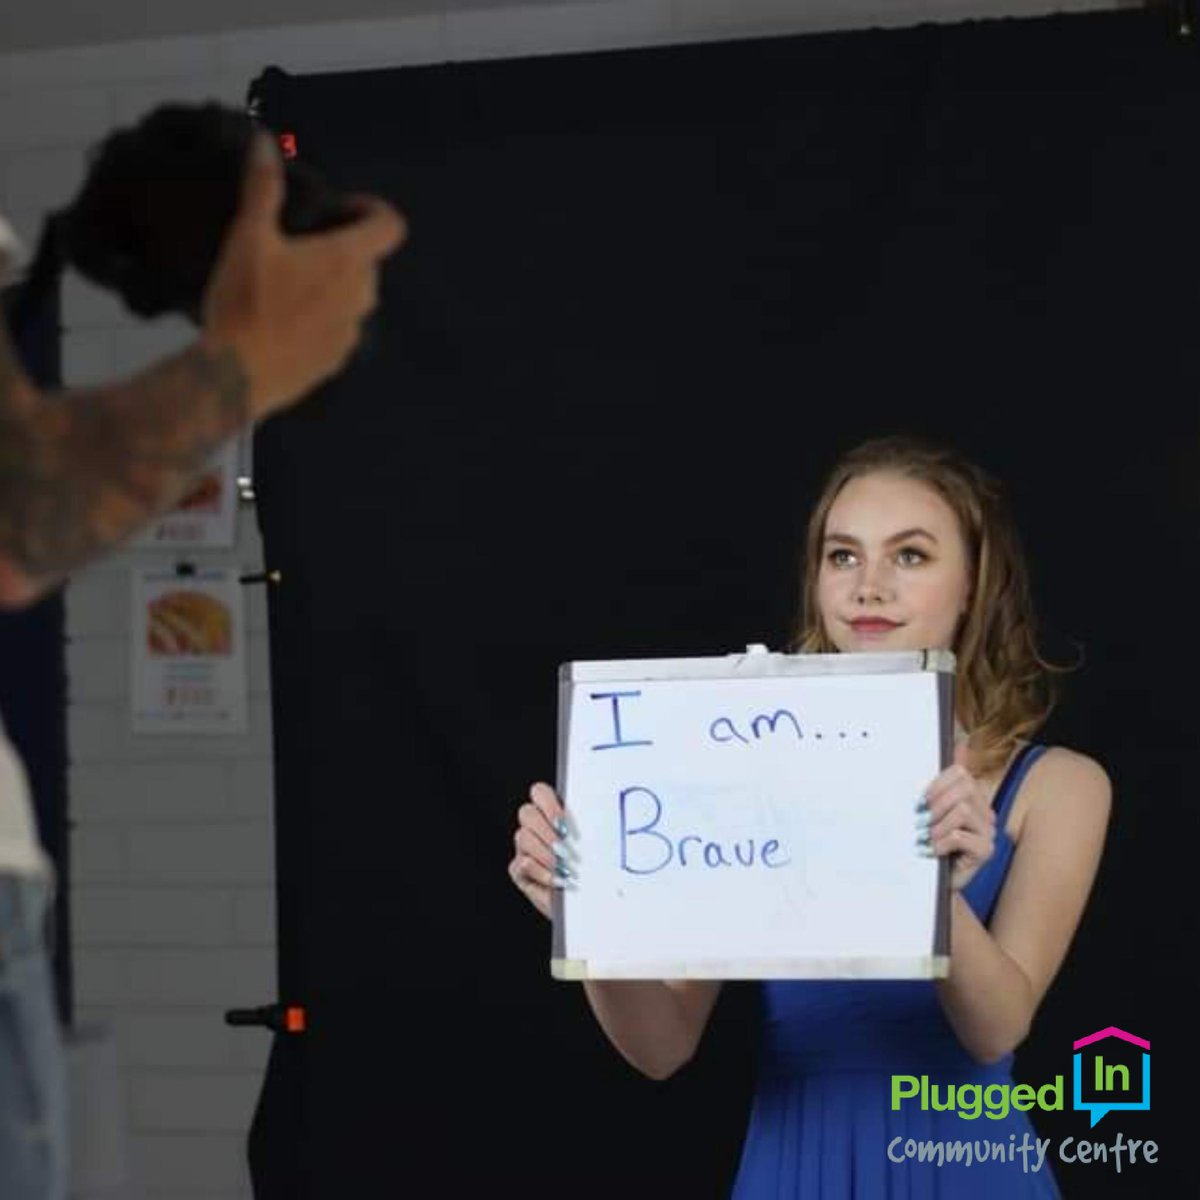 "Words from one of our BEME2019 participants:  ""My favourite part was having a lady talk about her story and how she overcame people telling her she wasn't good enoug… She was very inspirational and opened my mind up to accepting myself."" #PluggedIn #IAm #BEME2019 #ThankYou"